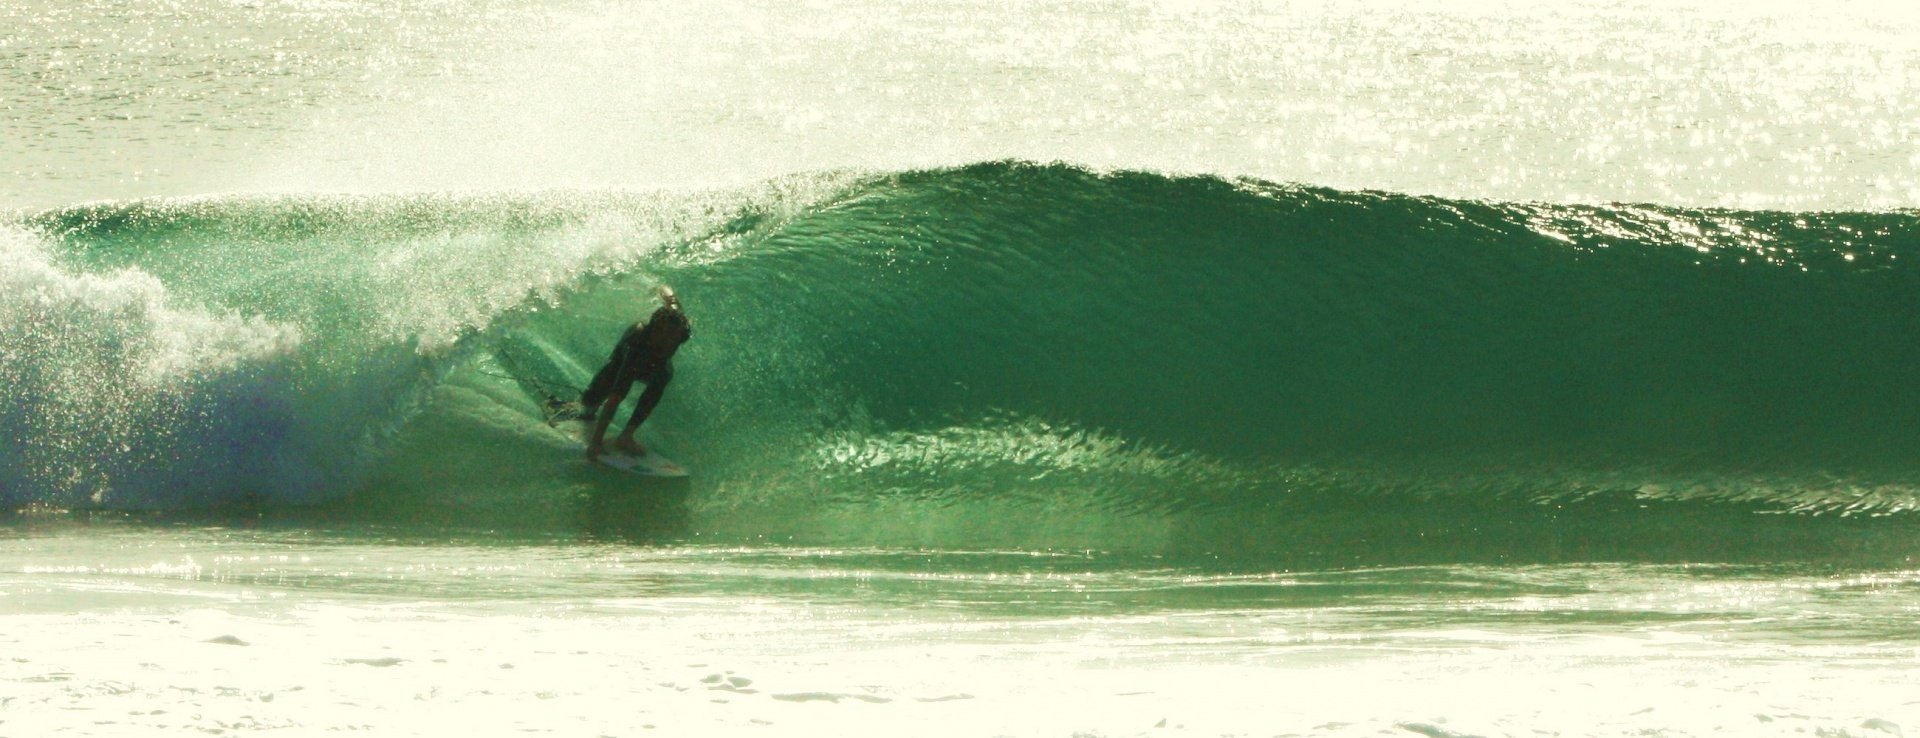 rhys olivey's photo of Forster